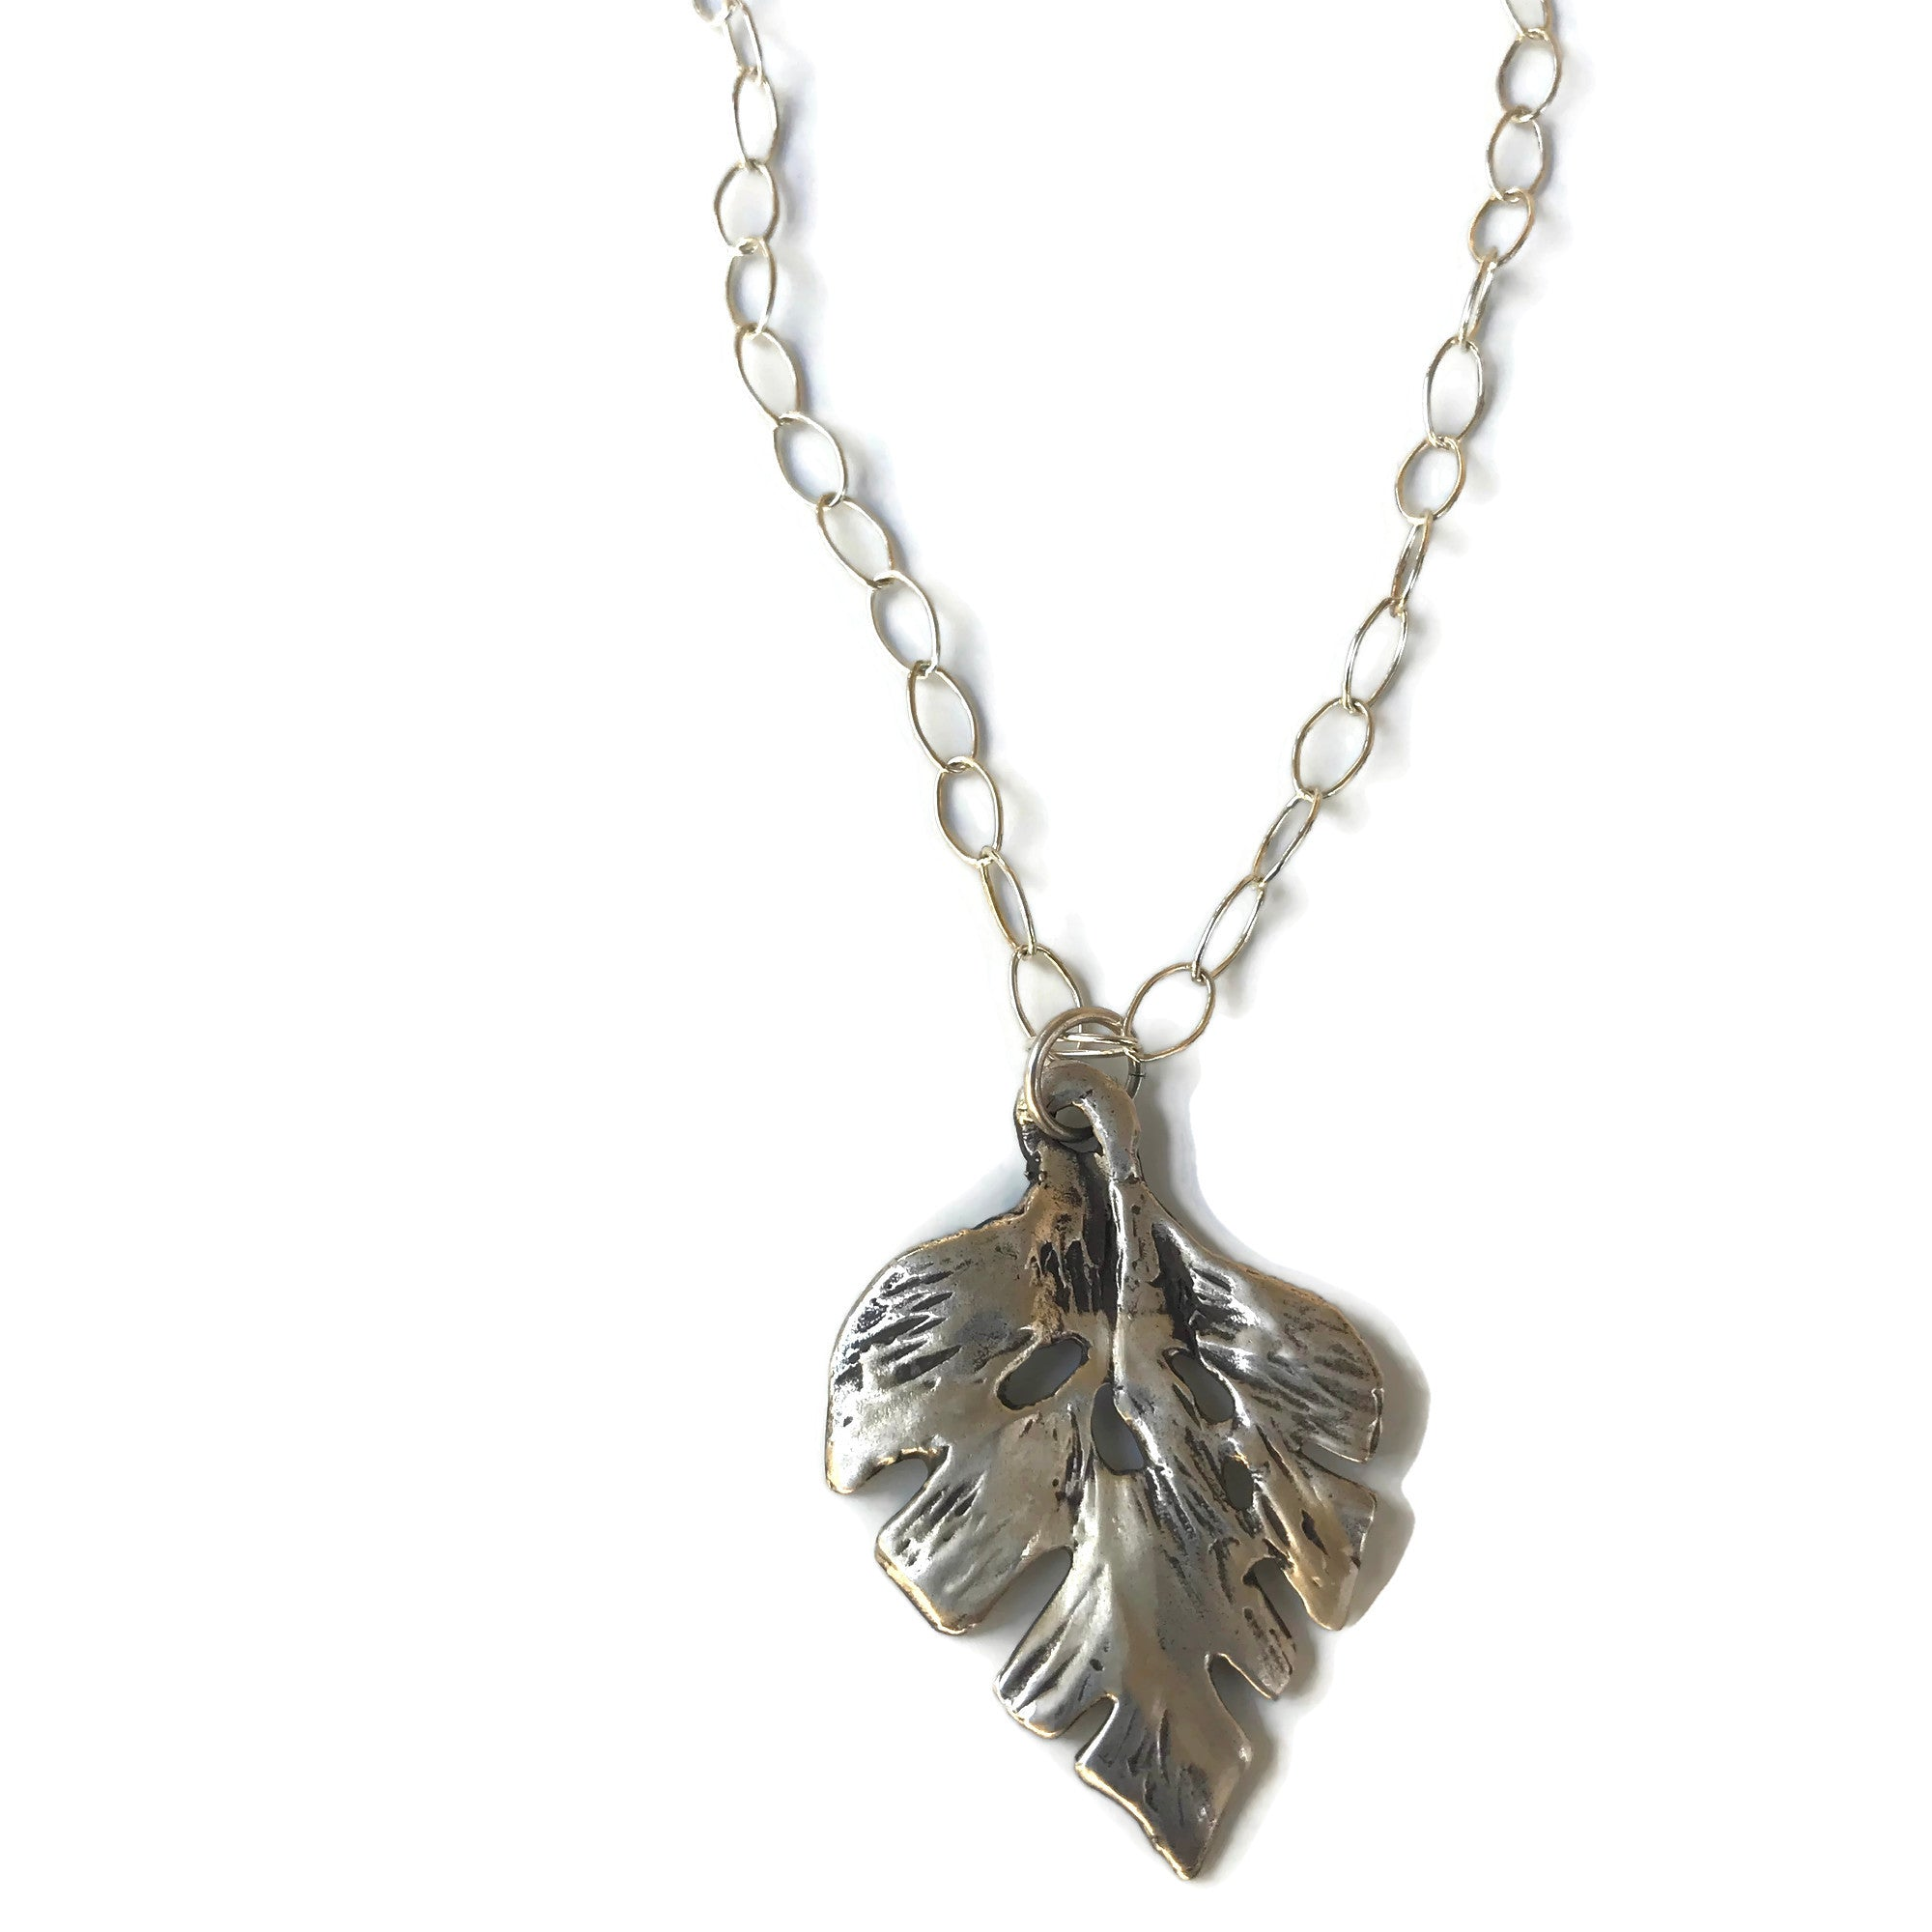 hand-sculpted silver leaf pendant on open link chain